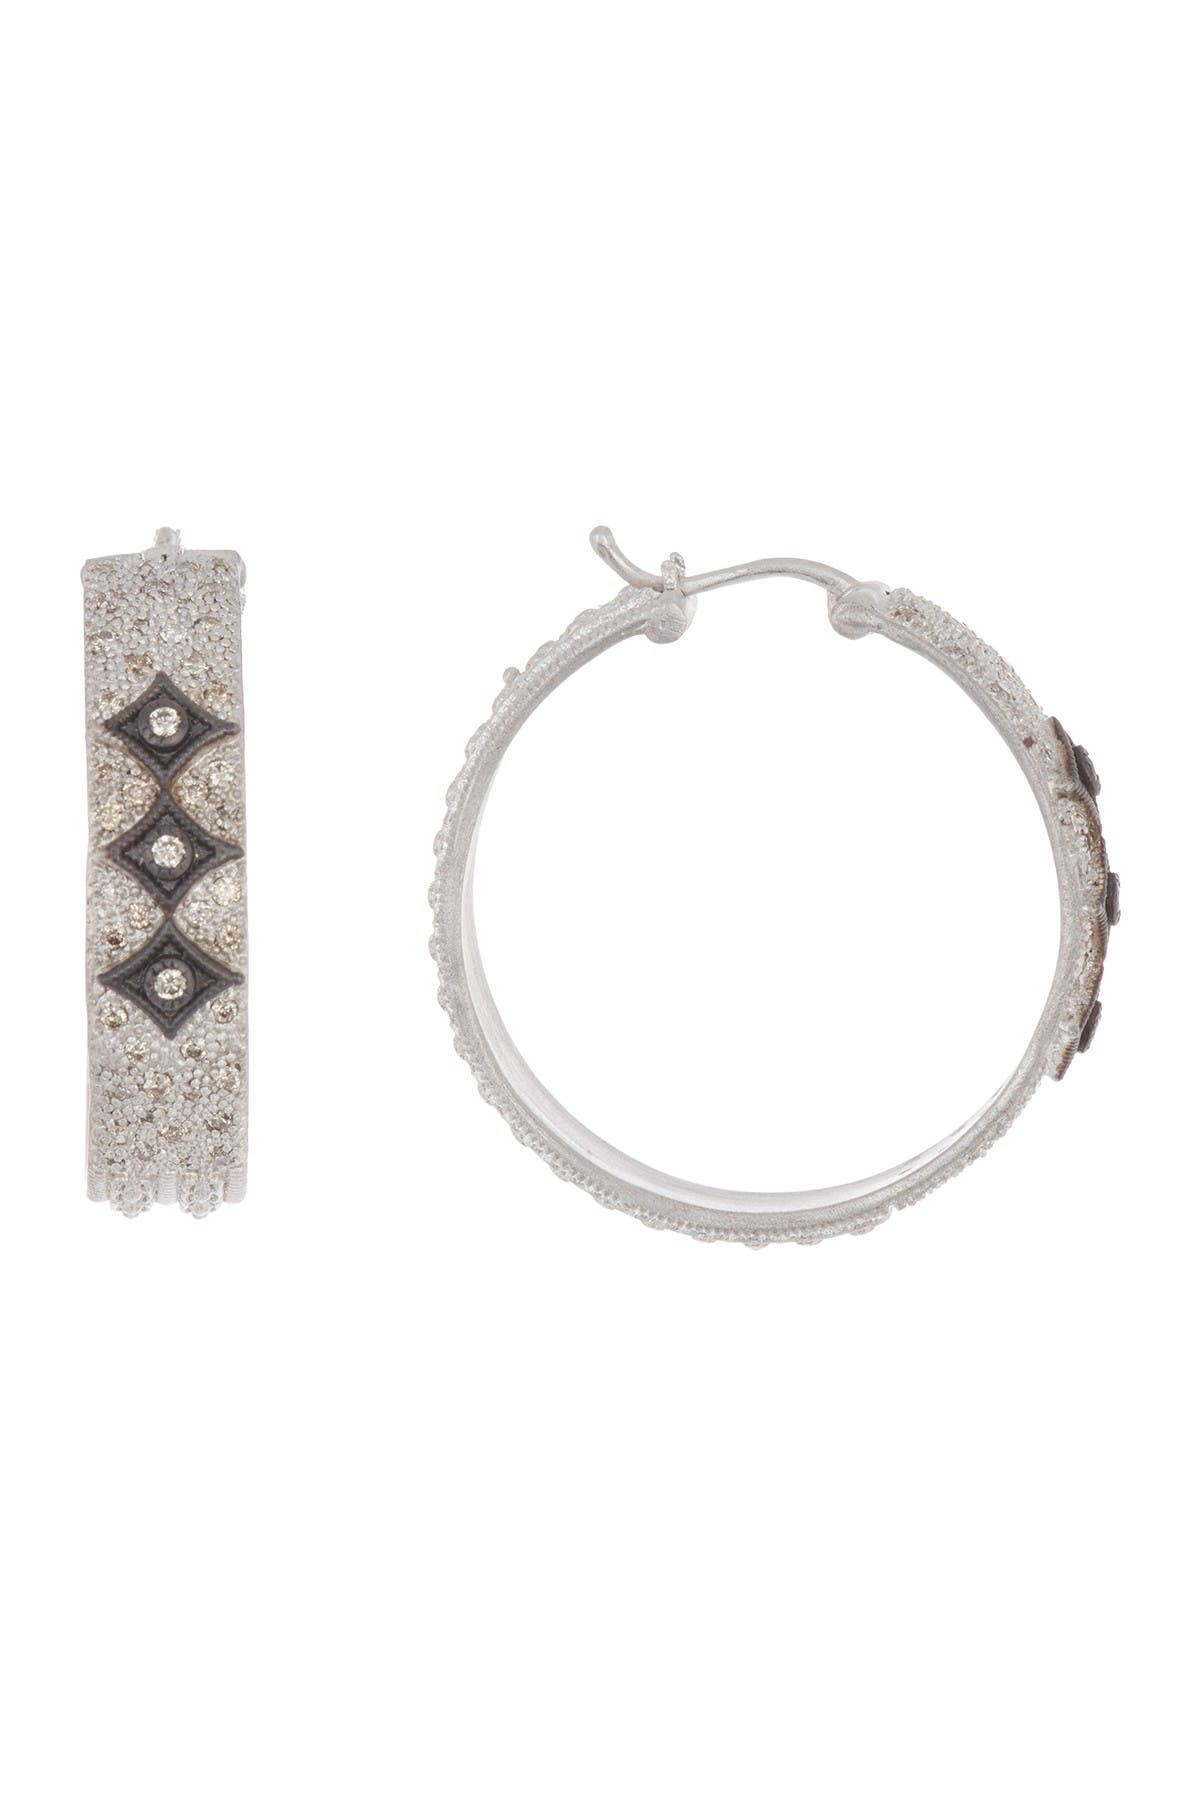 Image of ARMENTA New World Sterling Silver & Champagne Diamond Wide Crivelli Hoop Earrings